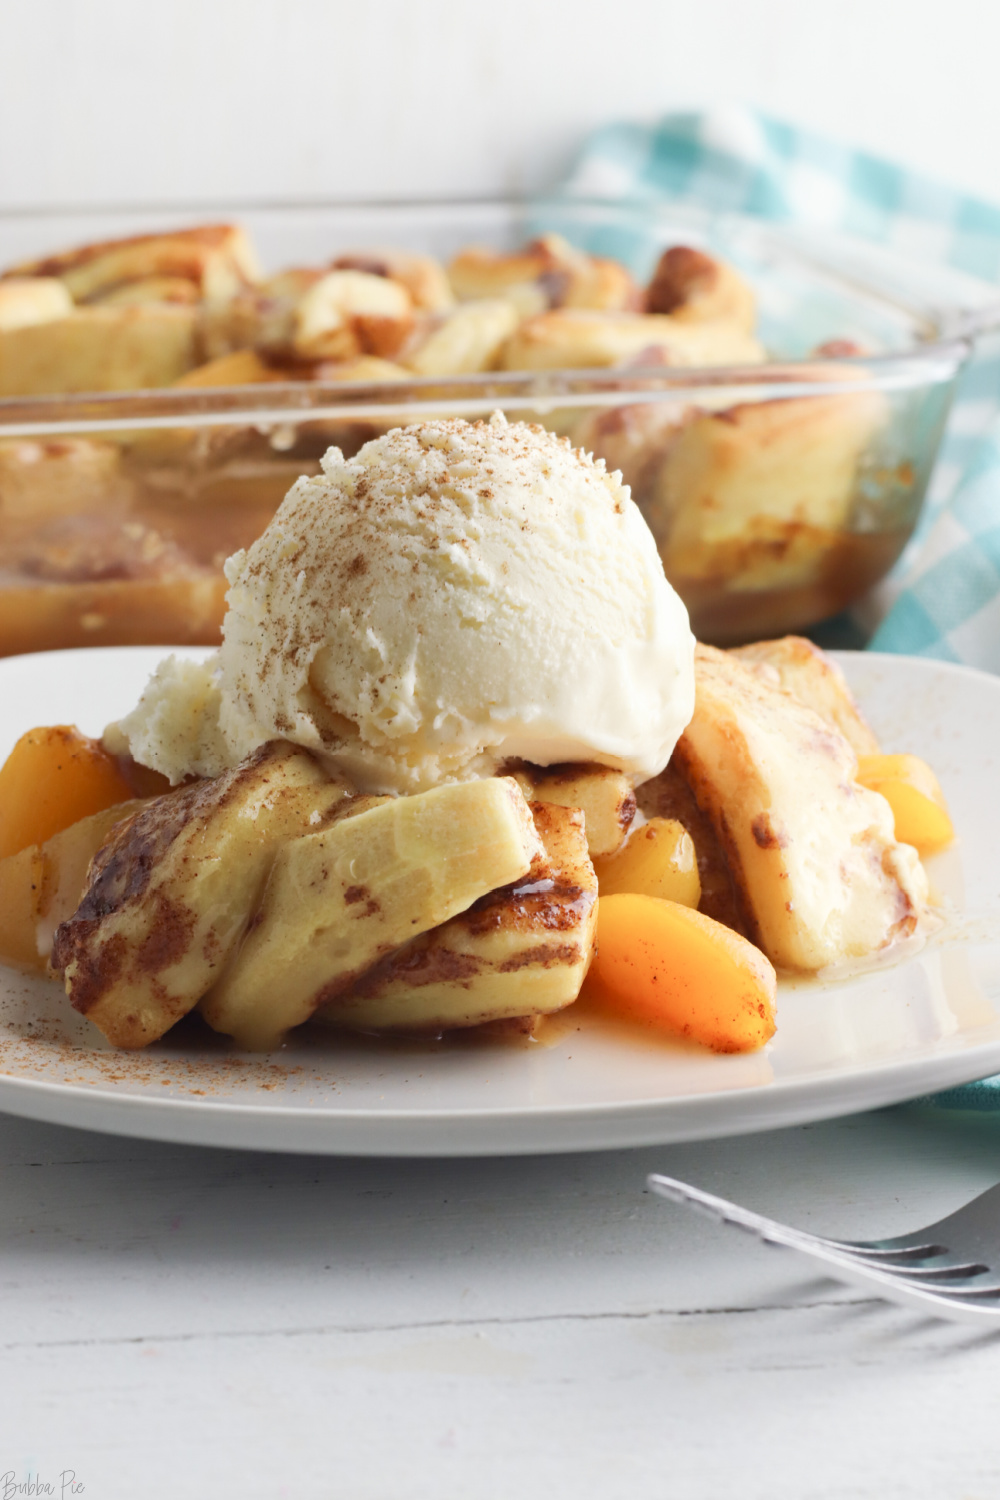 Cinnamon Roll Peach Cobbler Recipe being served on a white plate.